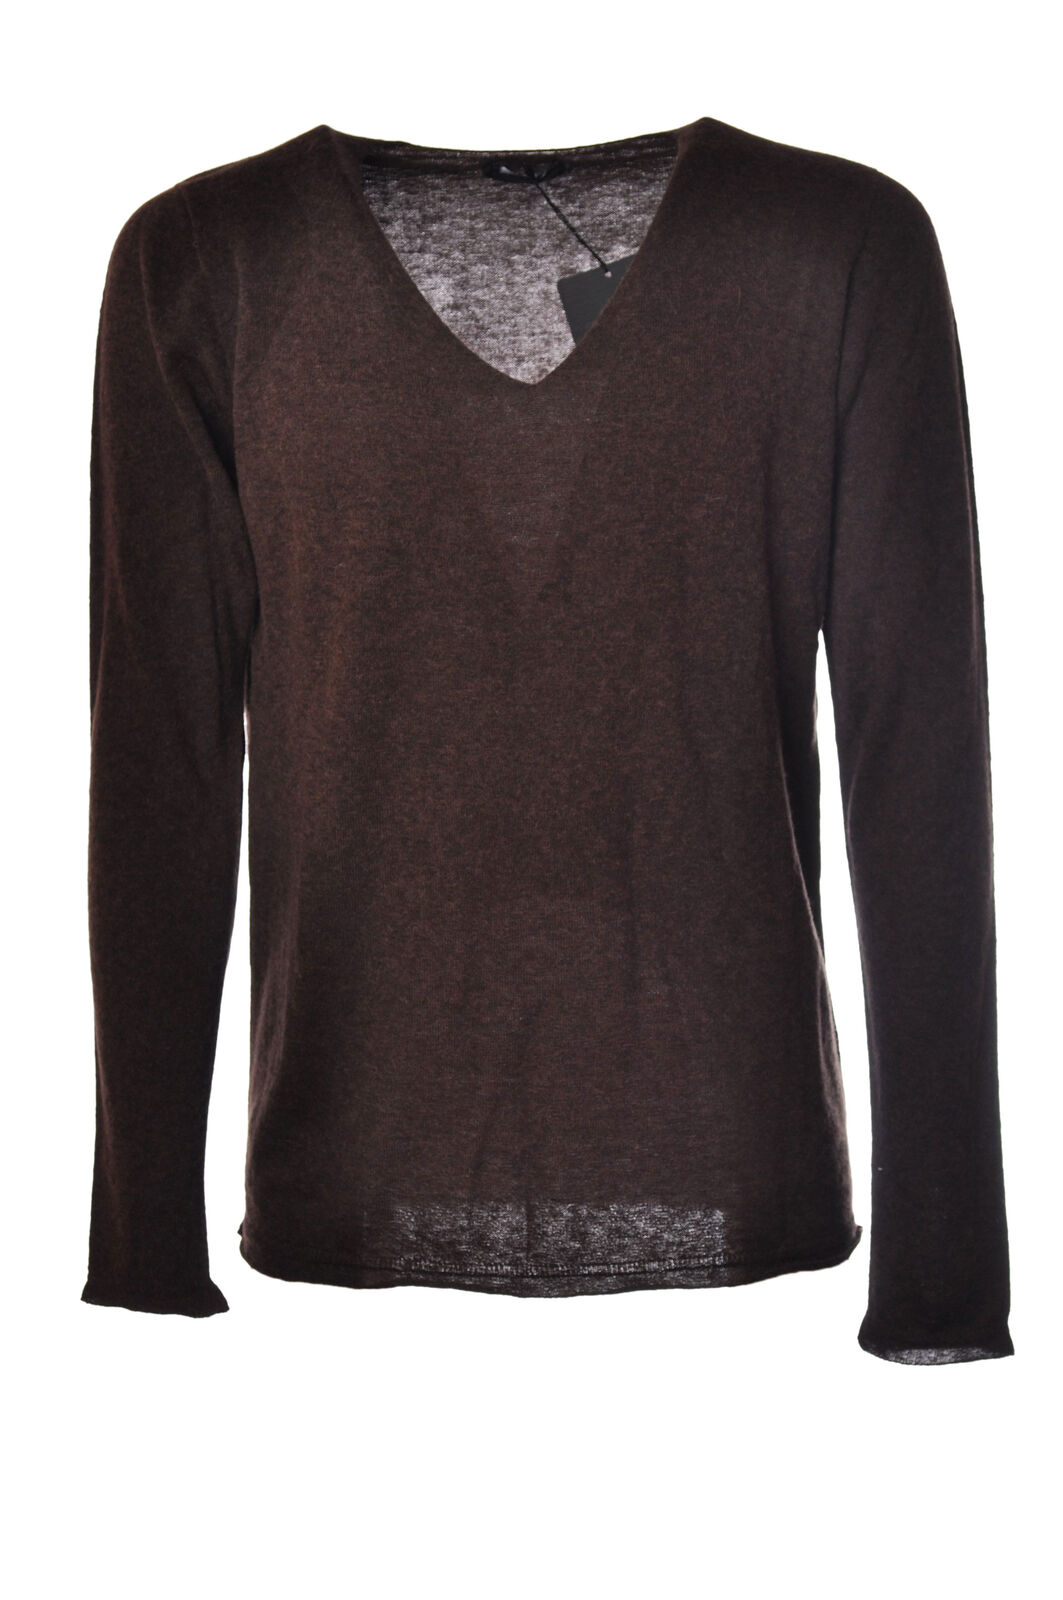 Roberto Collina  -  Sweaters - Male - Braun - 2426526N173945